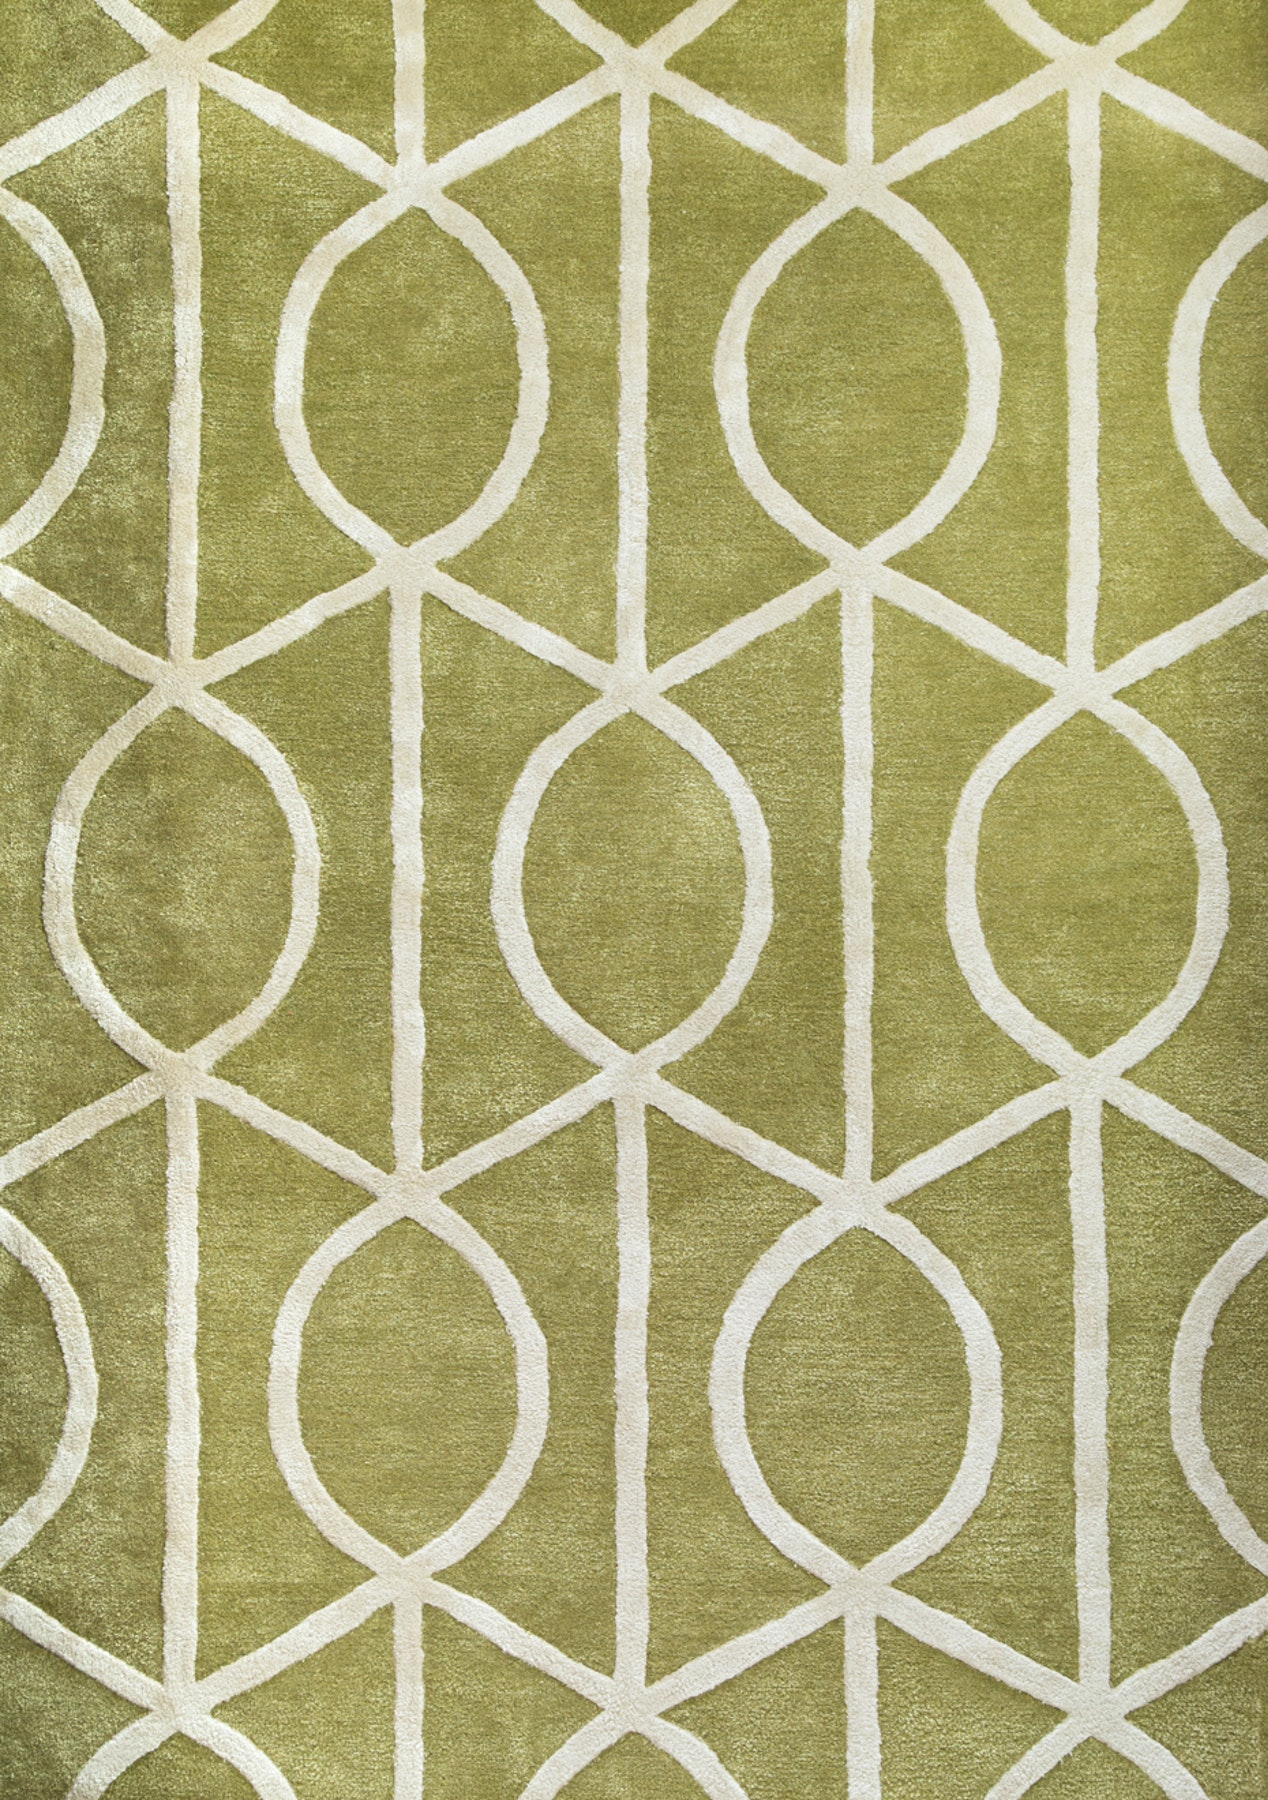 City wool blend rug 200x300 best selling rugs onceit for Best selling rugs